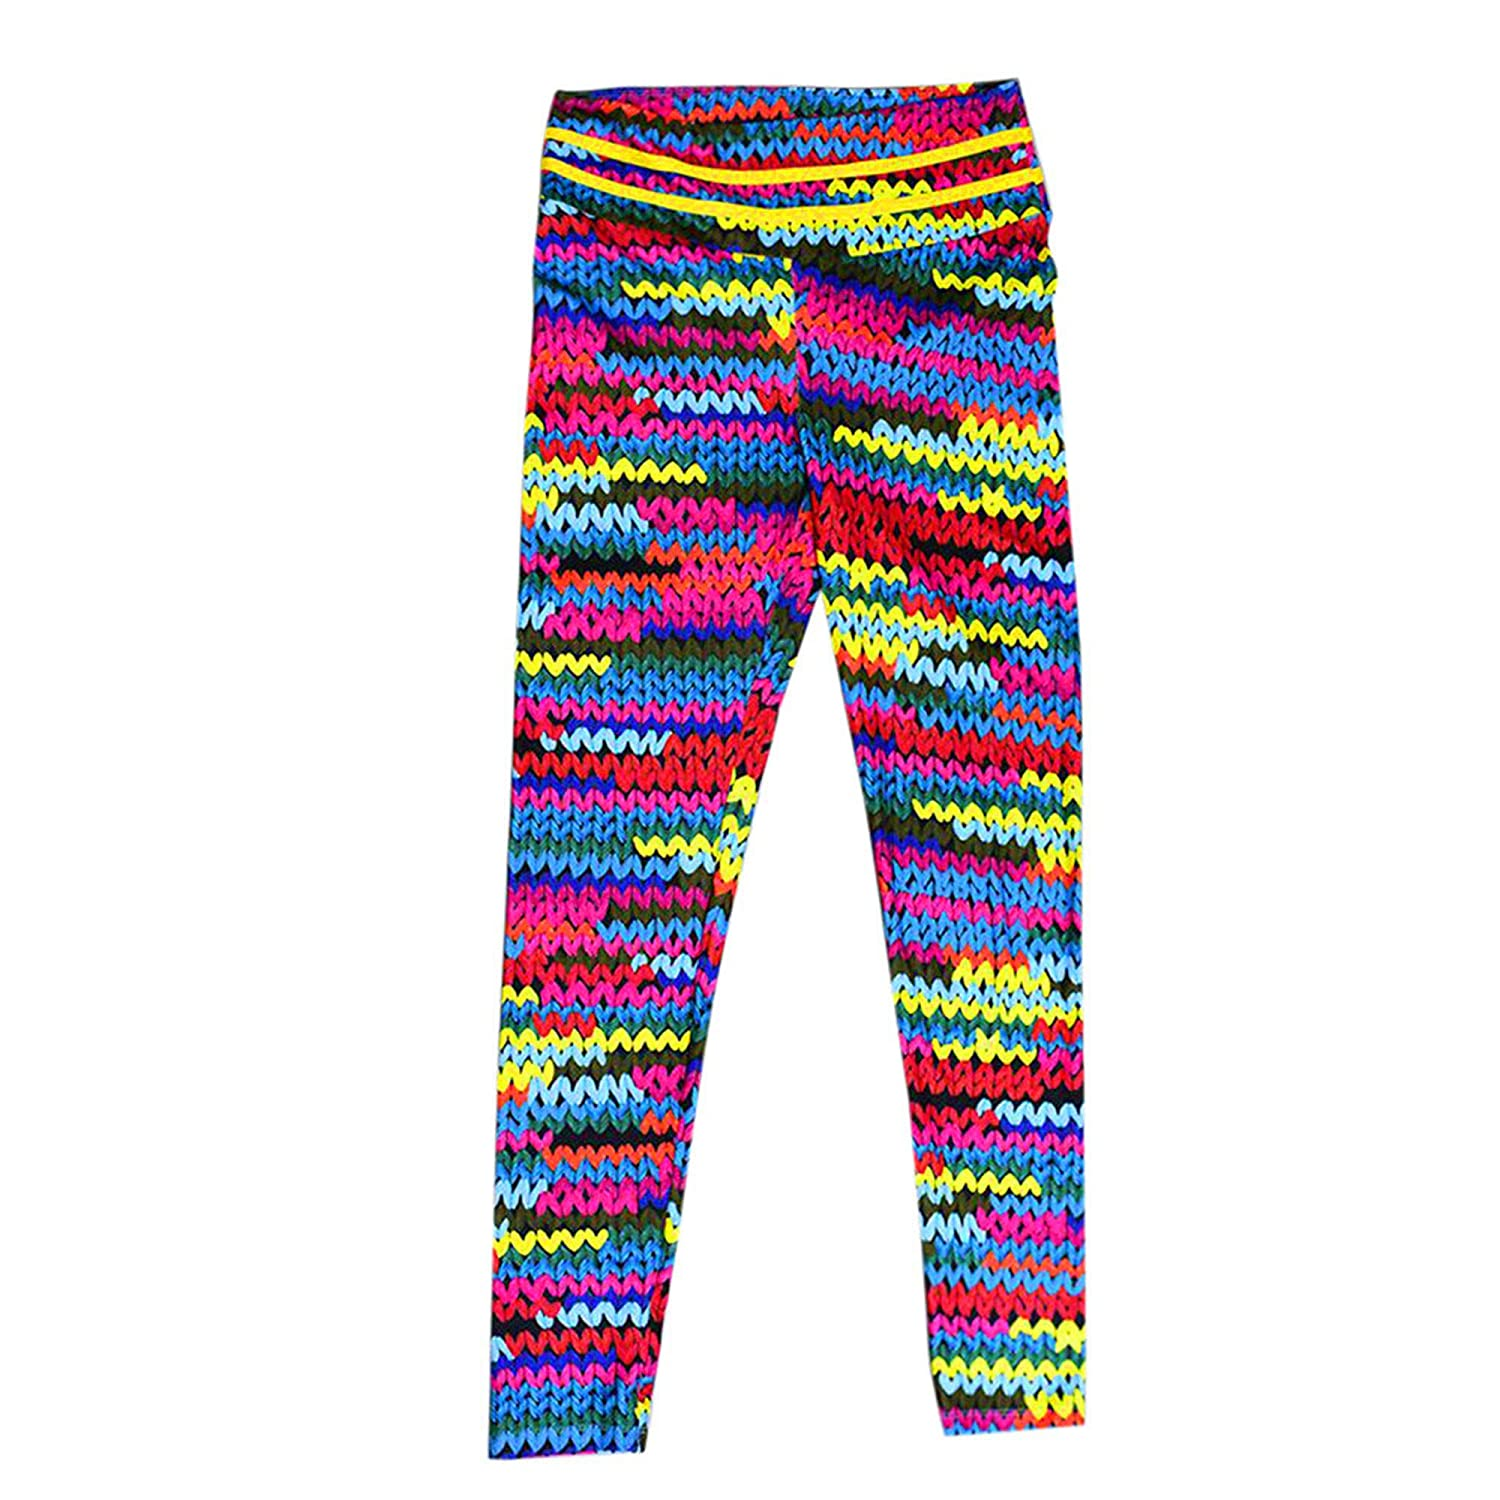 3c1a31ca1cbed Amazon.com: Fanteecy Women Sexy Colorful Knitting Ruched Butt Lift Yoga  Leggings High Waist Stretch Pants Hip Push up Tights: Clothing